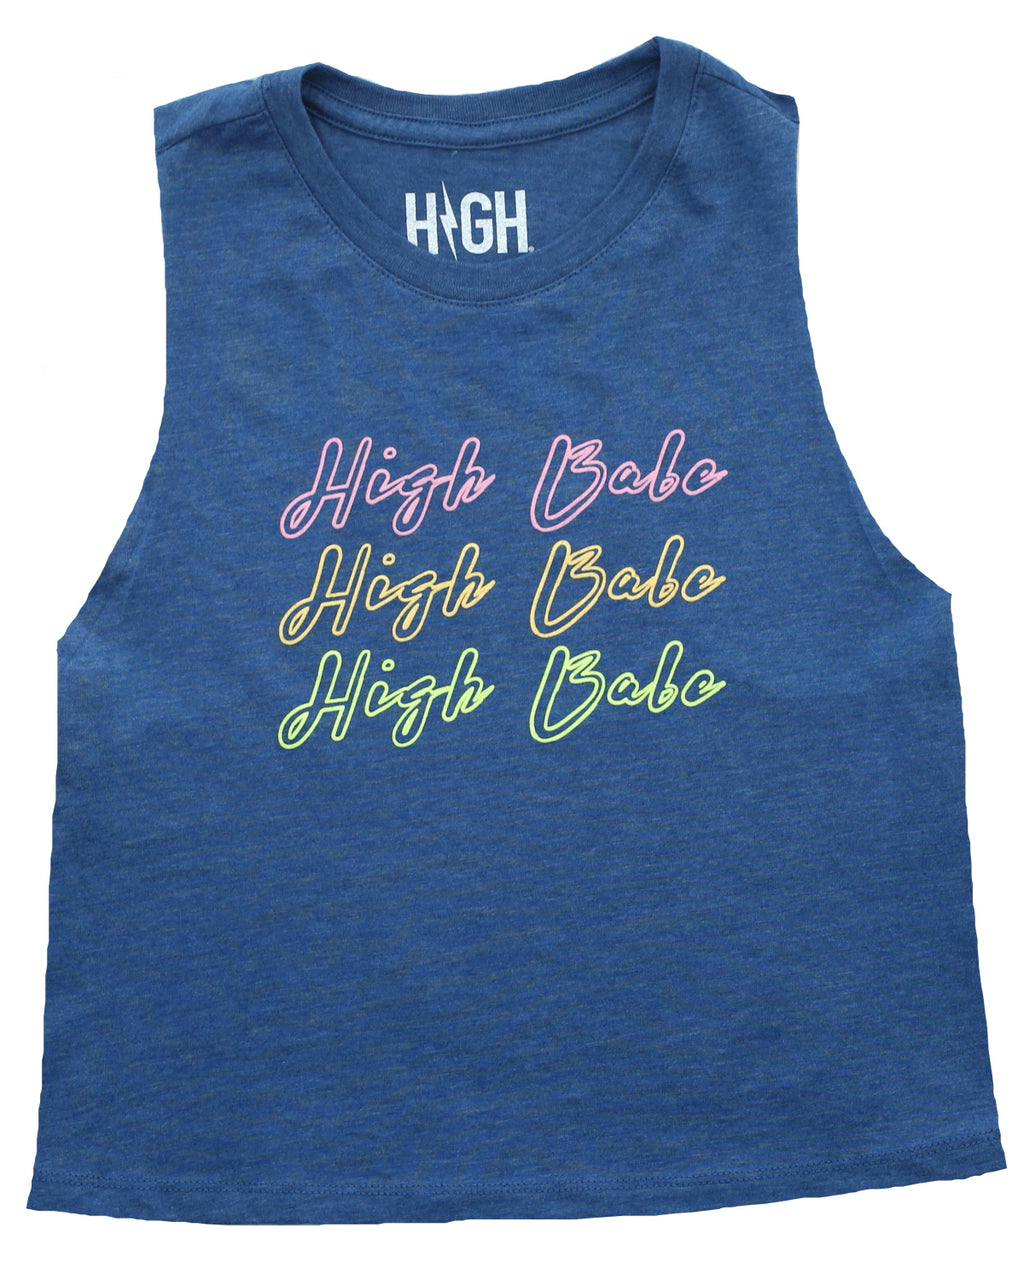 HIGH Babe Crop Tank